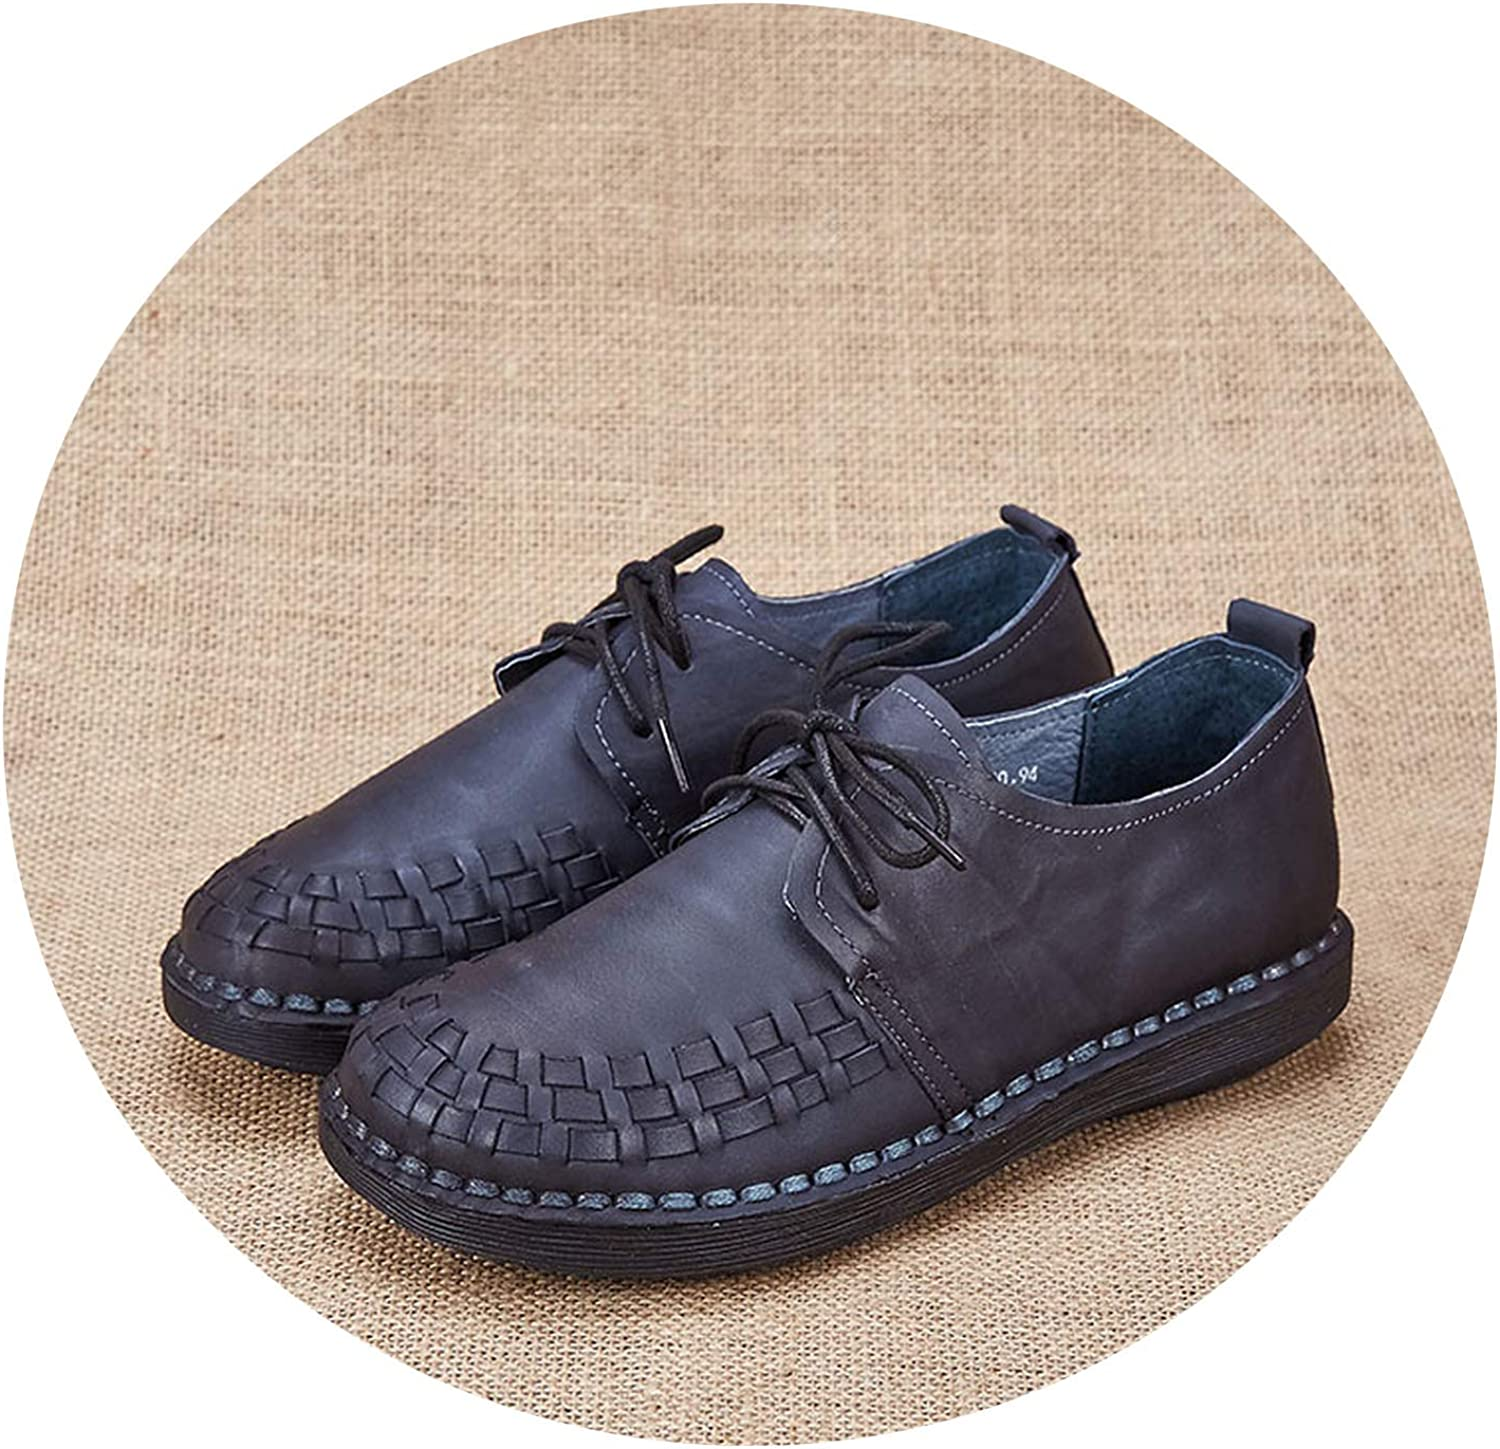 Be fearless Genuine Leather Oxford shoes for Women Round Toe Lace-Up Casual shoes Spring and Autumn Flat Loafers